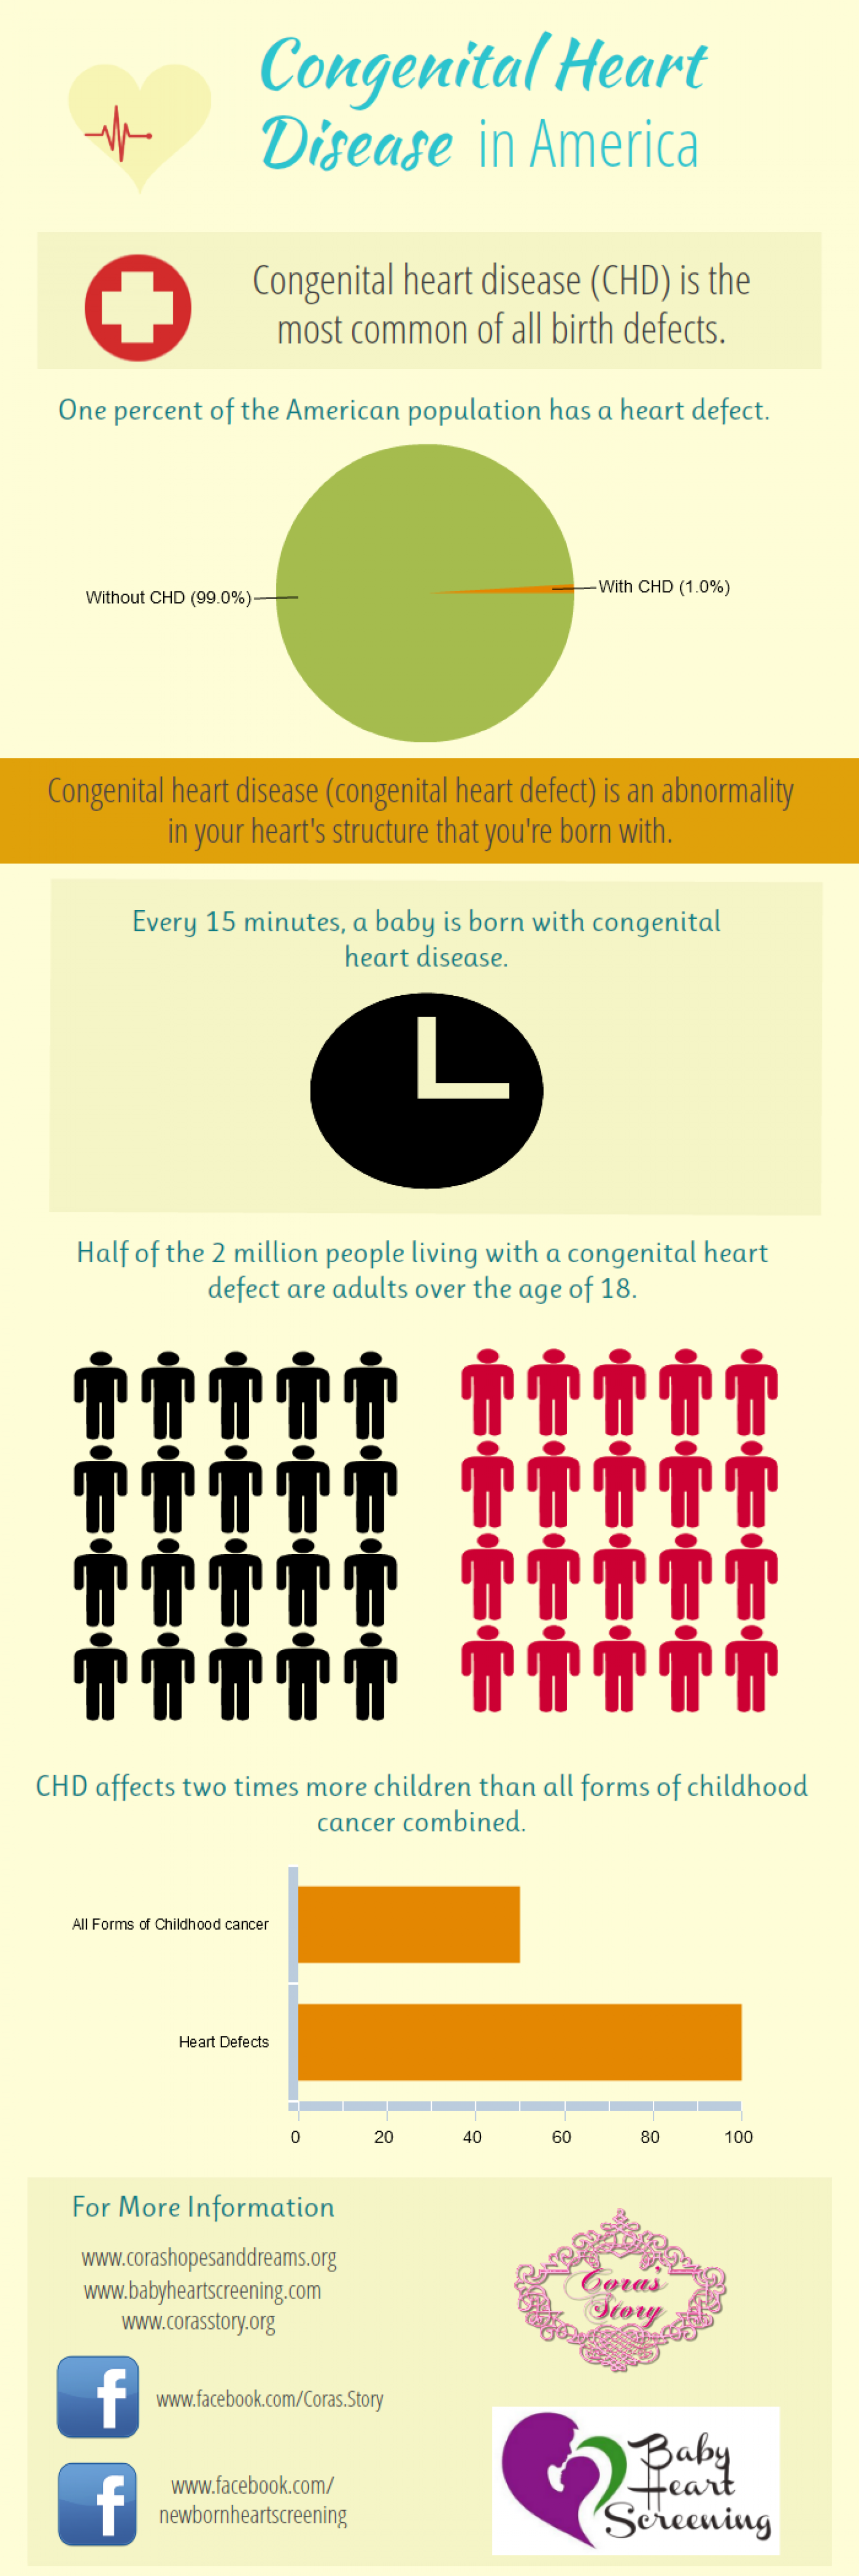 By the Numbers: Congenital Heart Disease in America Infographic